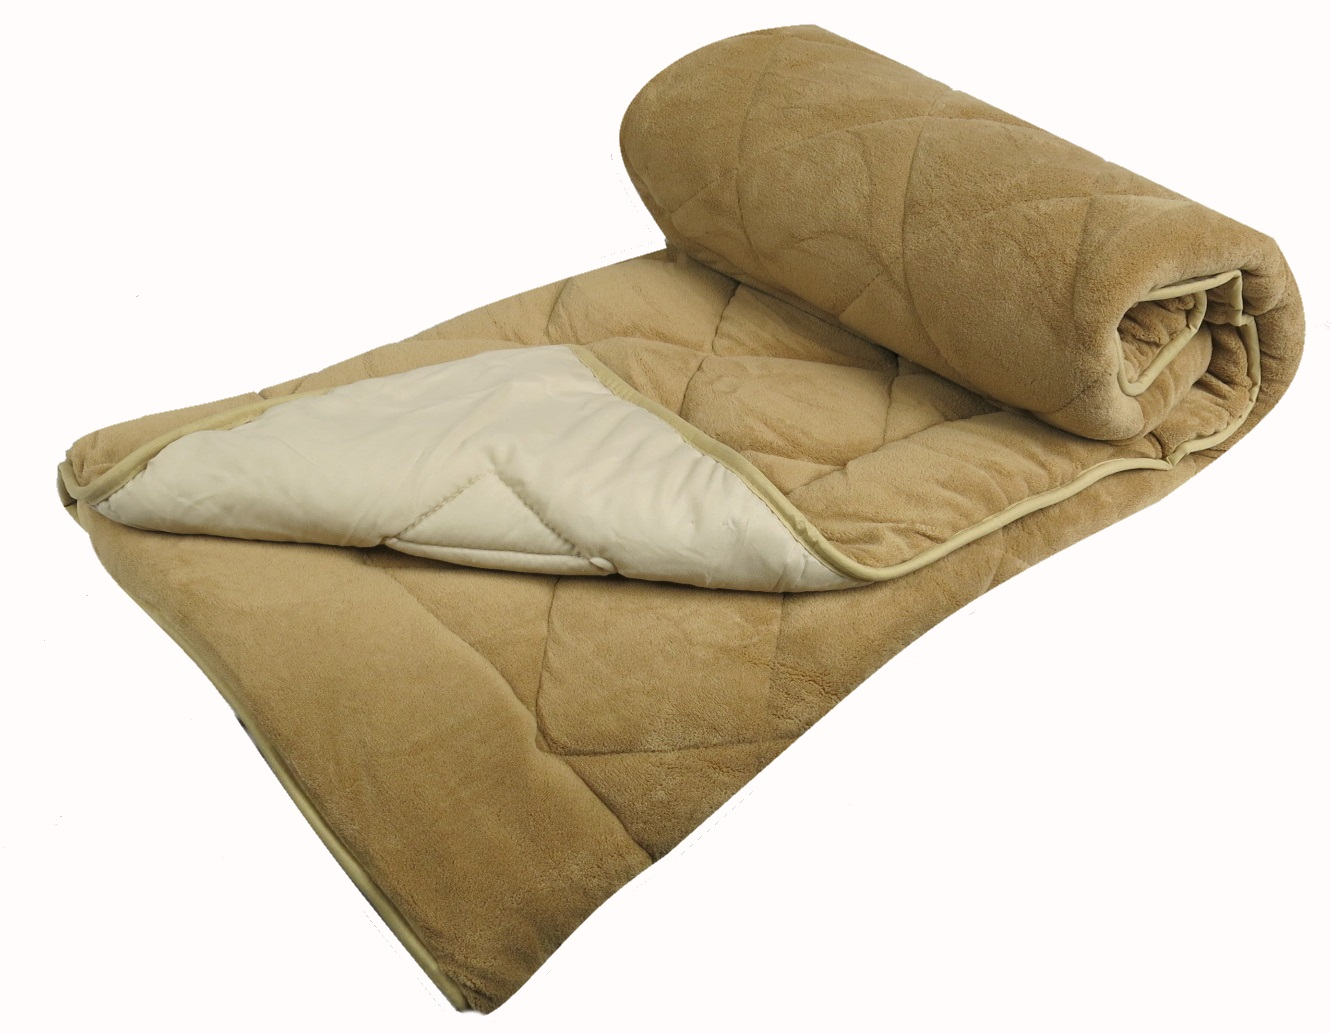 Couvre lit Veloura Boutis piqué sherpa 90grs - BEIGE/CREME - 180X220